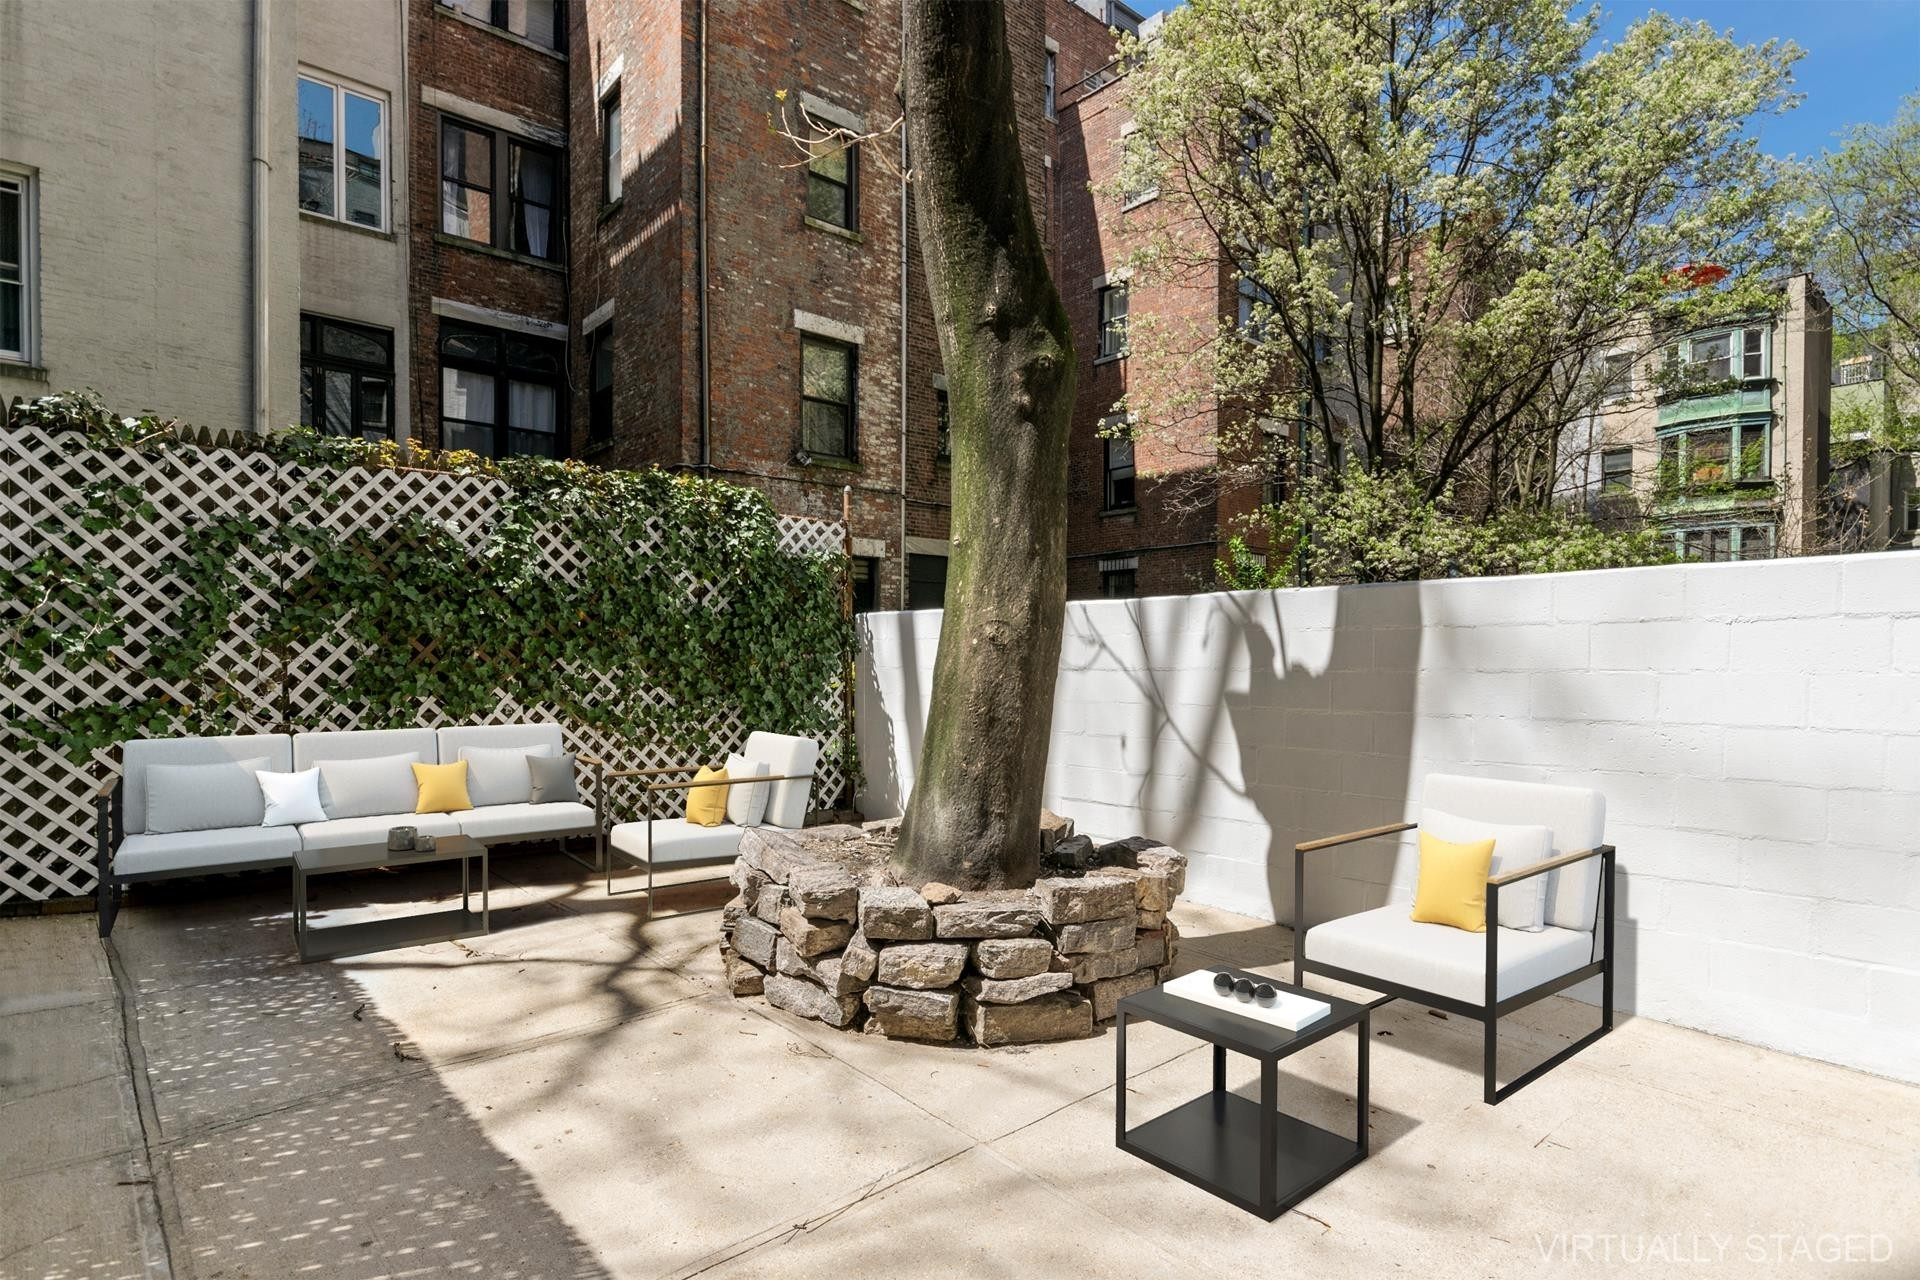 4. Rentals at 304 West 106th St, GARDEN New York